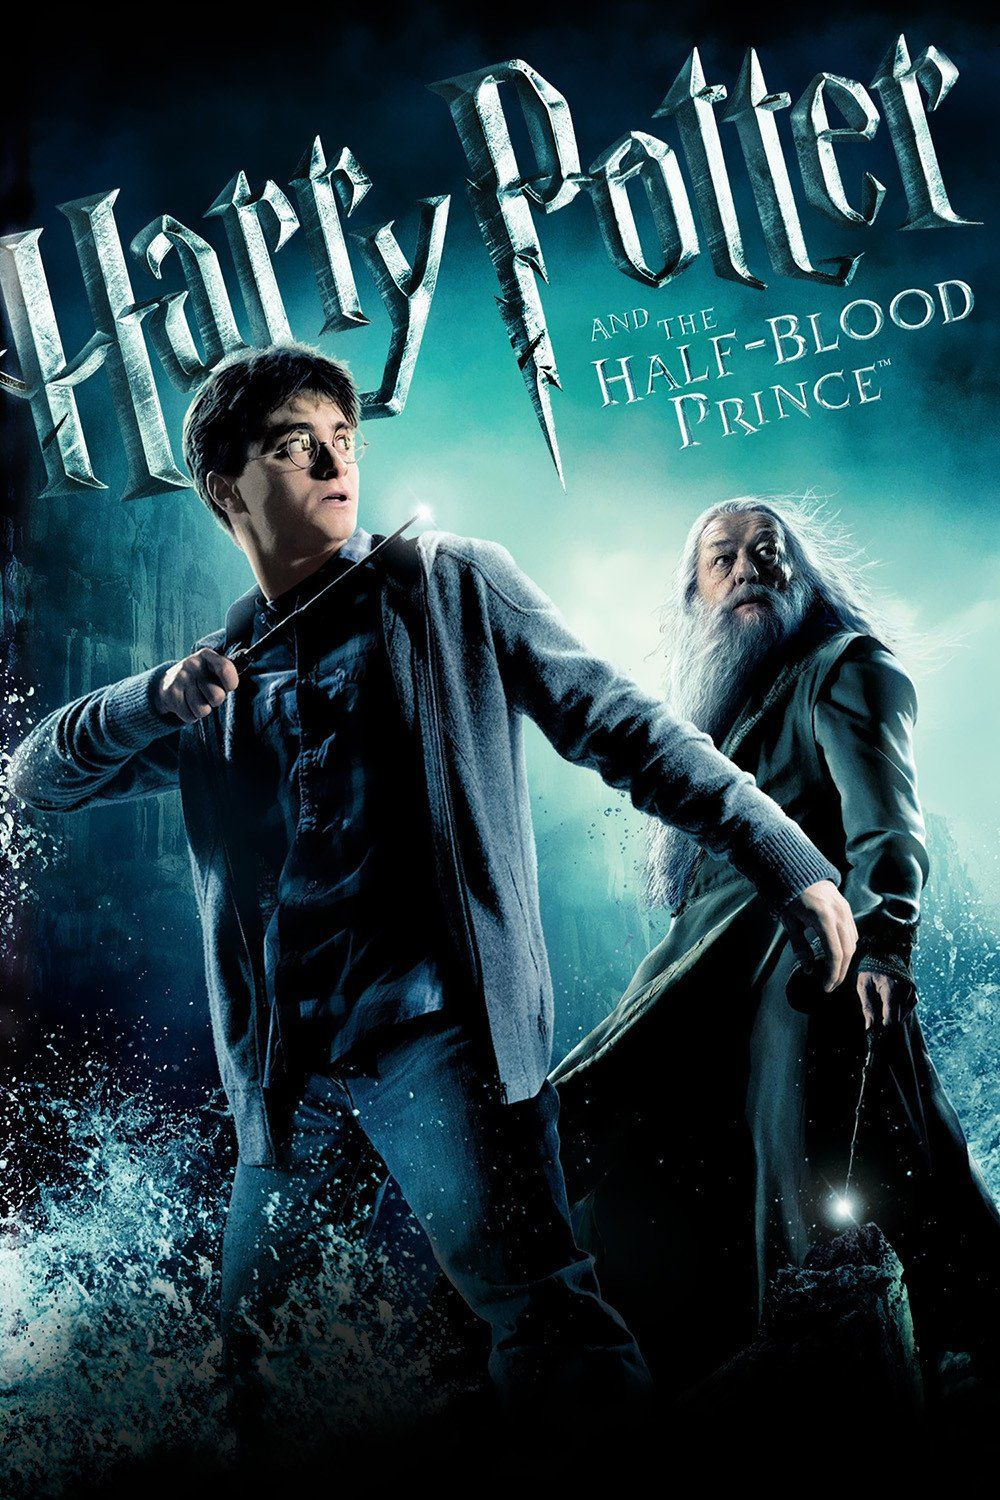 harry potter and the half blood prince full movie online without downloading